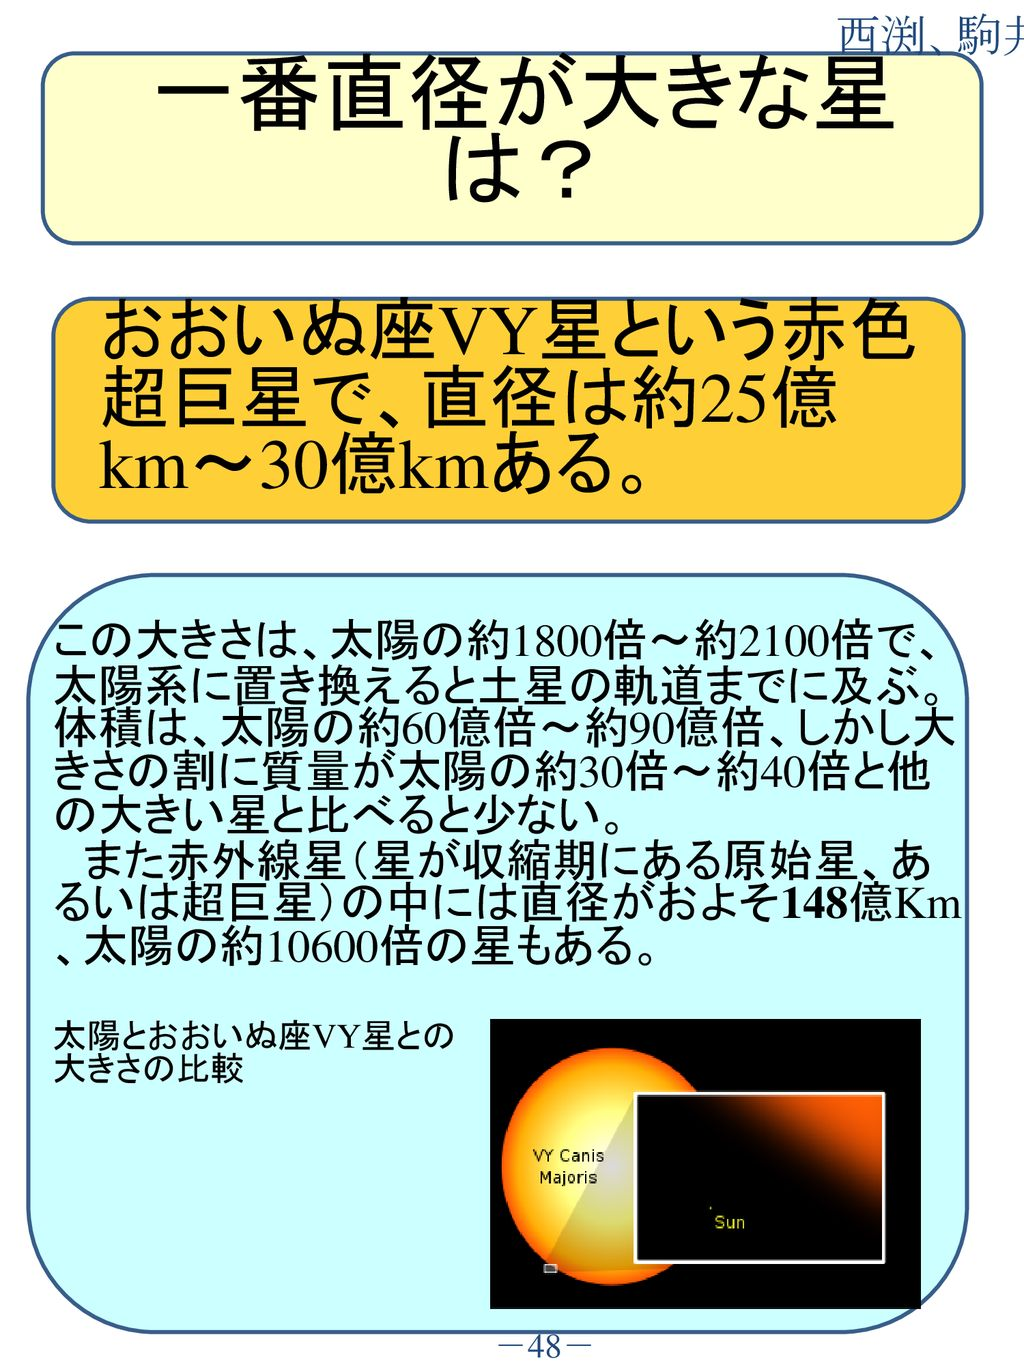 Vy おおい ぬ 星 座